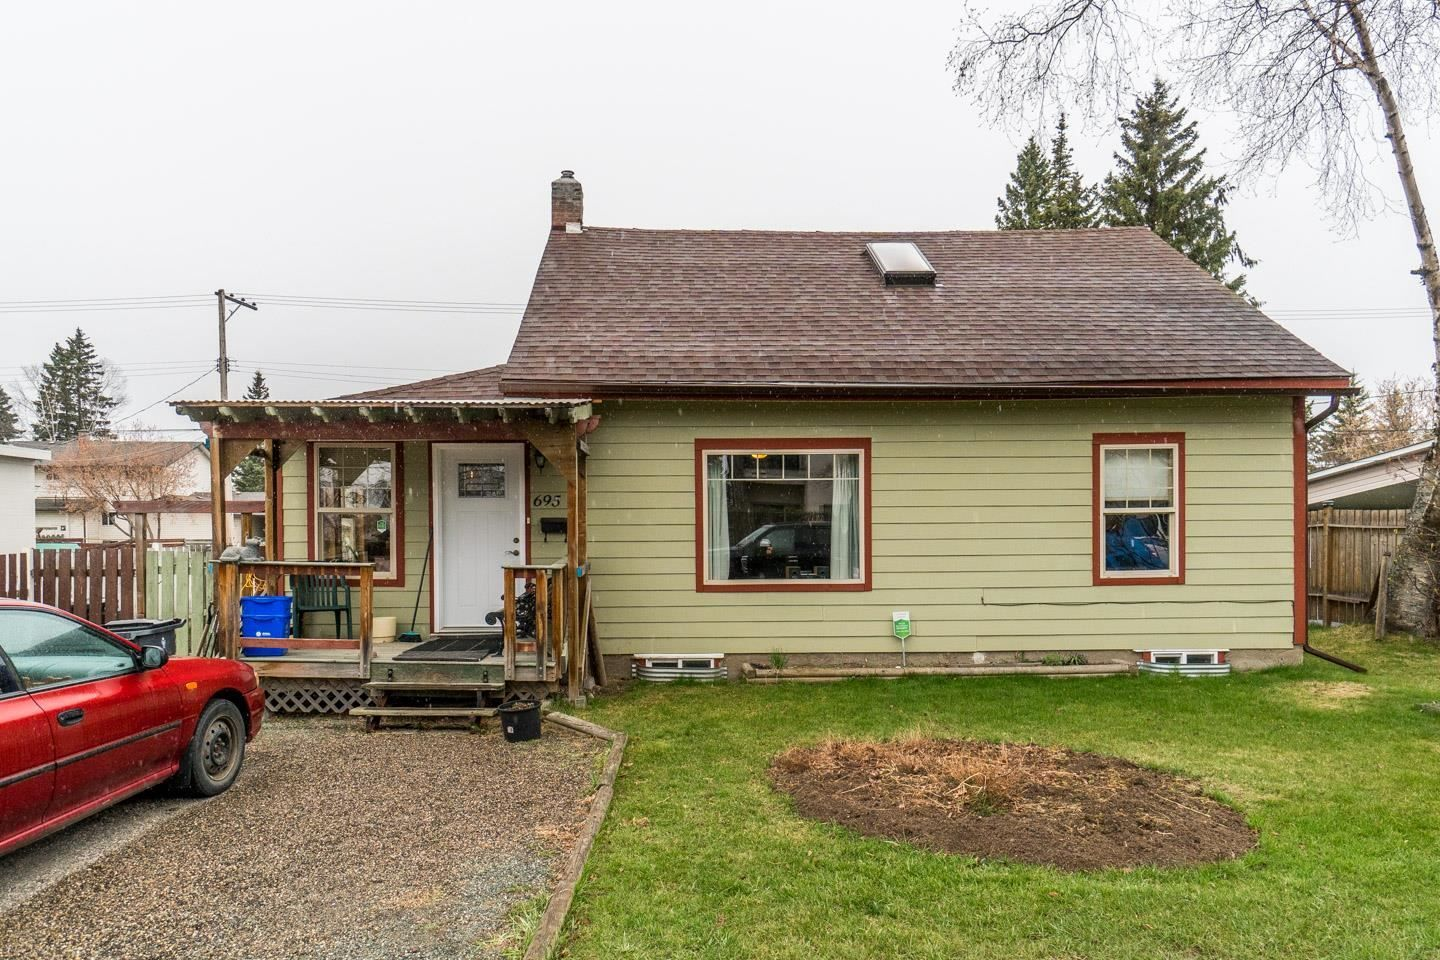 Main Photo: 695 ALWARD Street in Prince George: Crescents House for sale (PG City Central (Zone 72))  : MLS®# R2602135